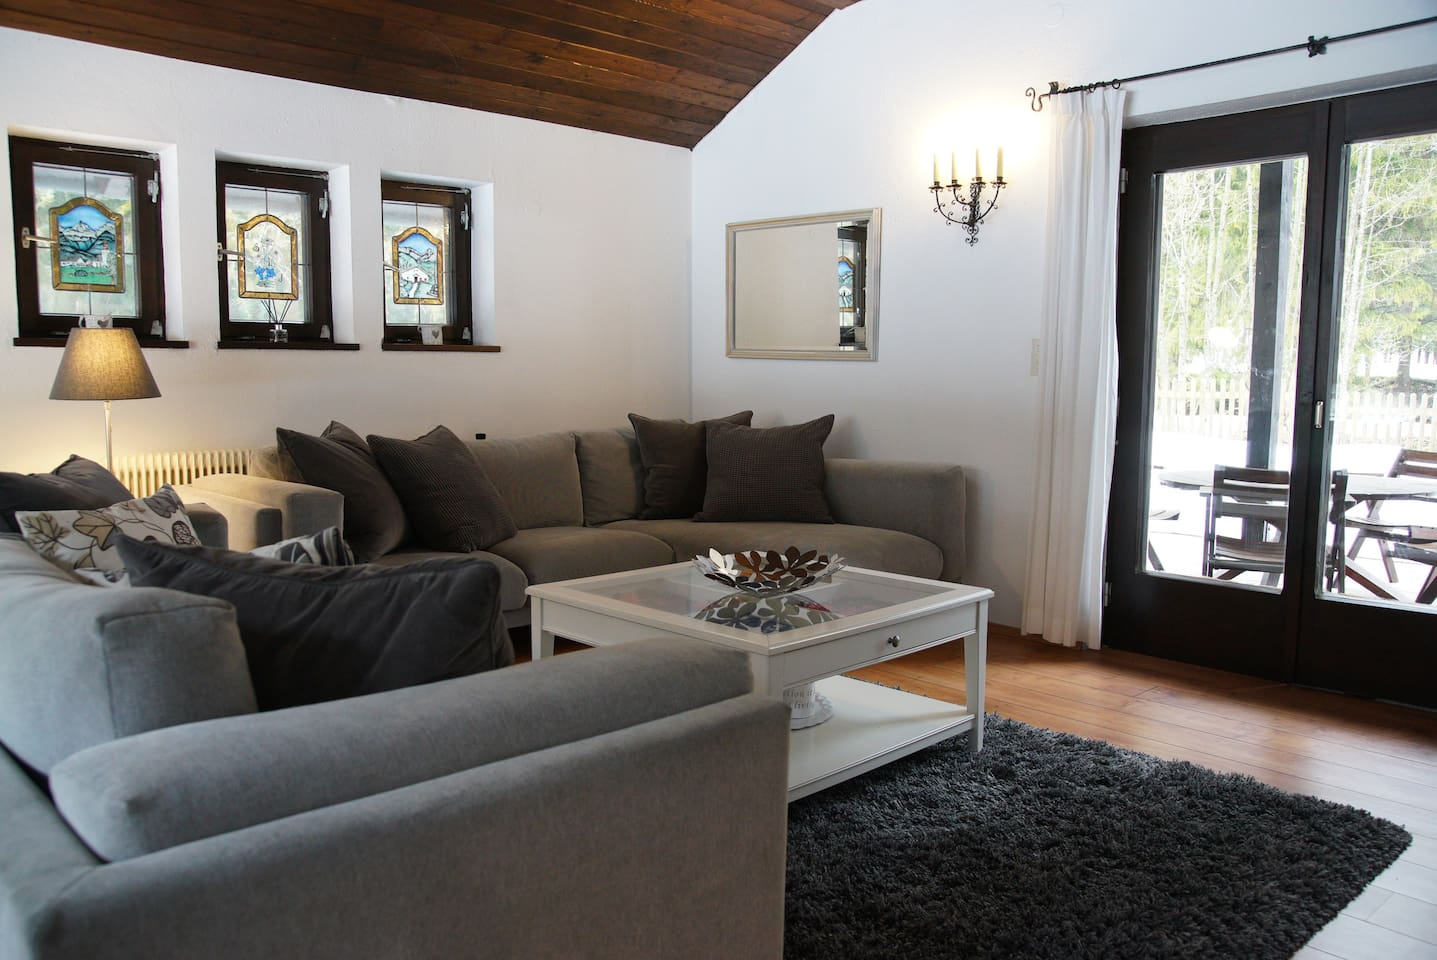 The bright, airy living room has plenty of comfortable seating and is a great place to relax. The room has views of the front garden and doors to the patio at the rear.